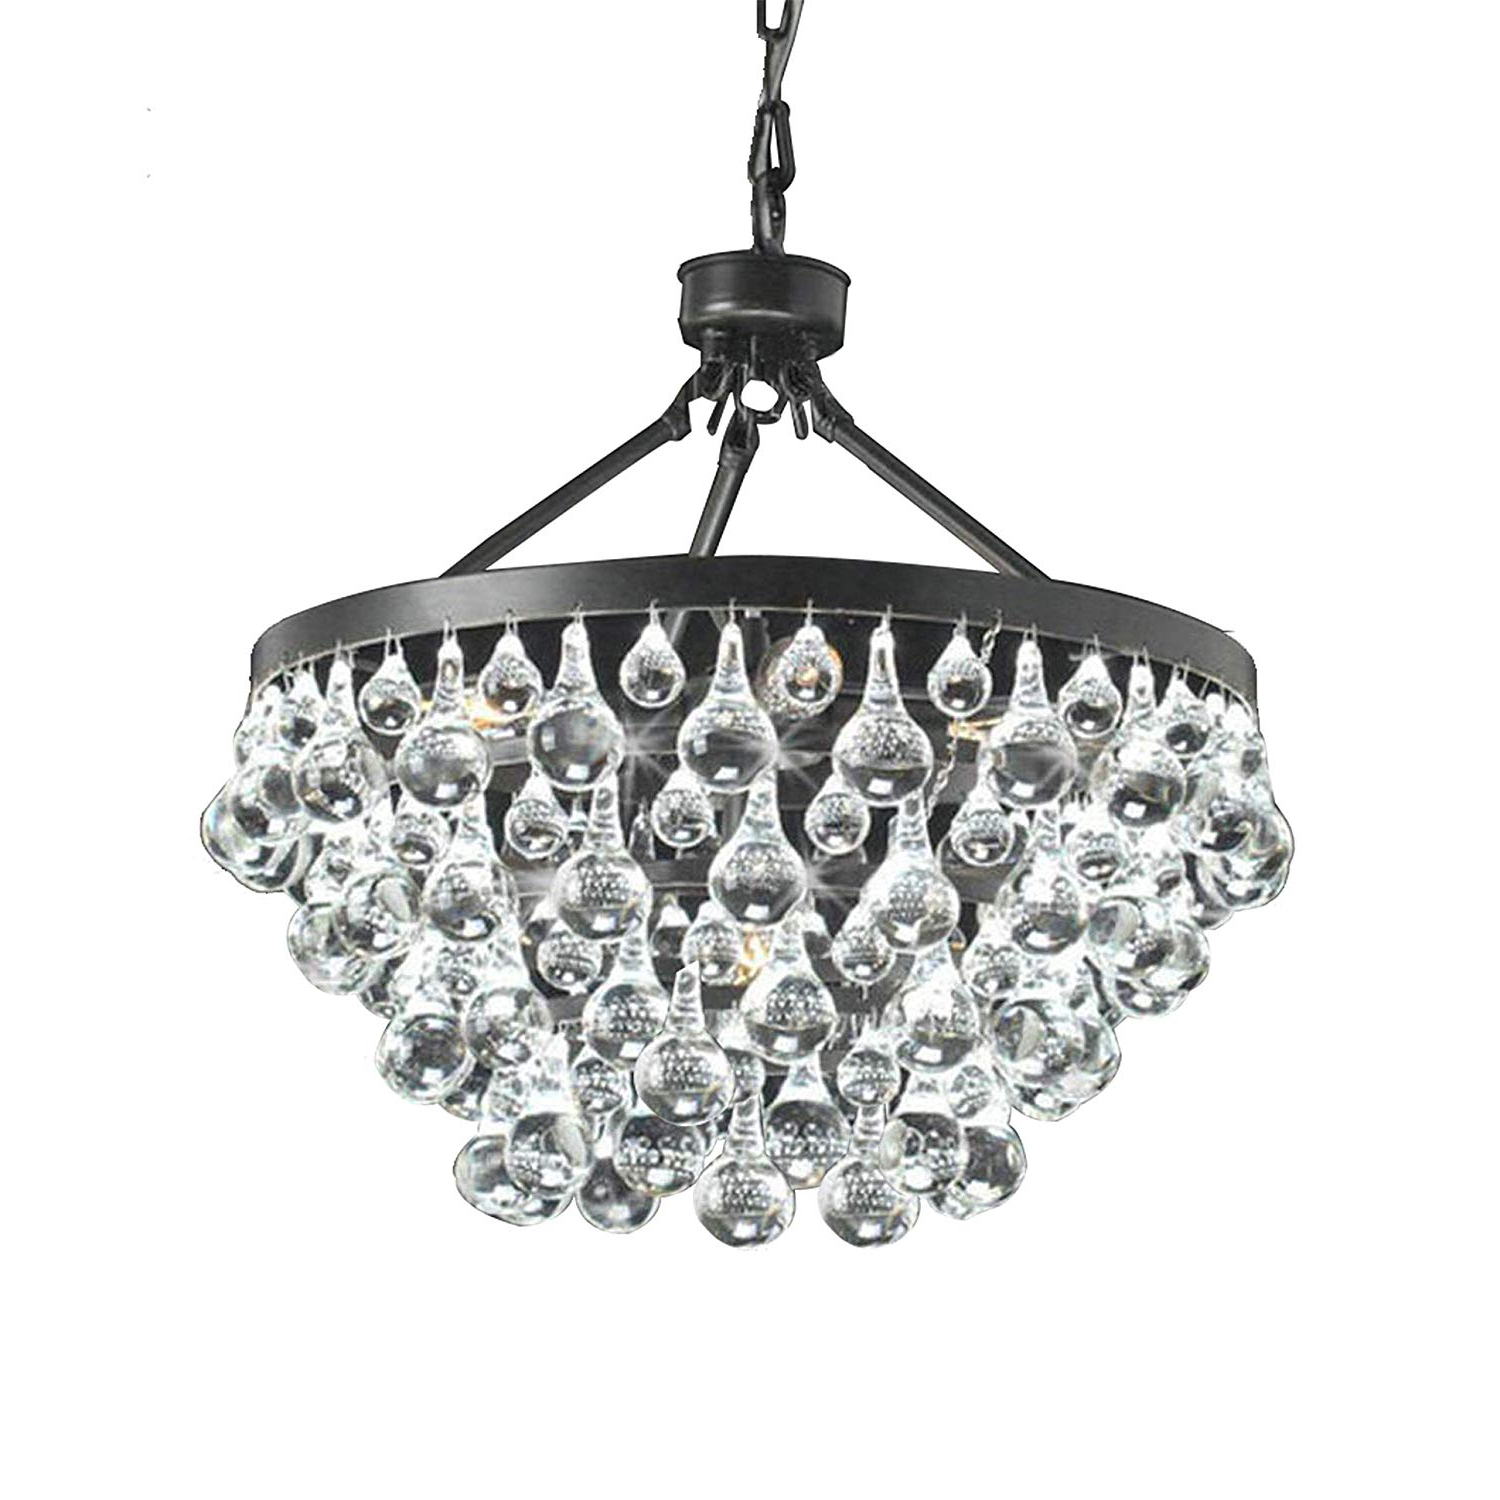 Fashionable Verdell 5 Light Crystal Chandeliers With Regard To Antique Black 5 Light Crystal Drop Chandelier (View 13 of 25)